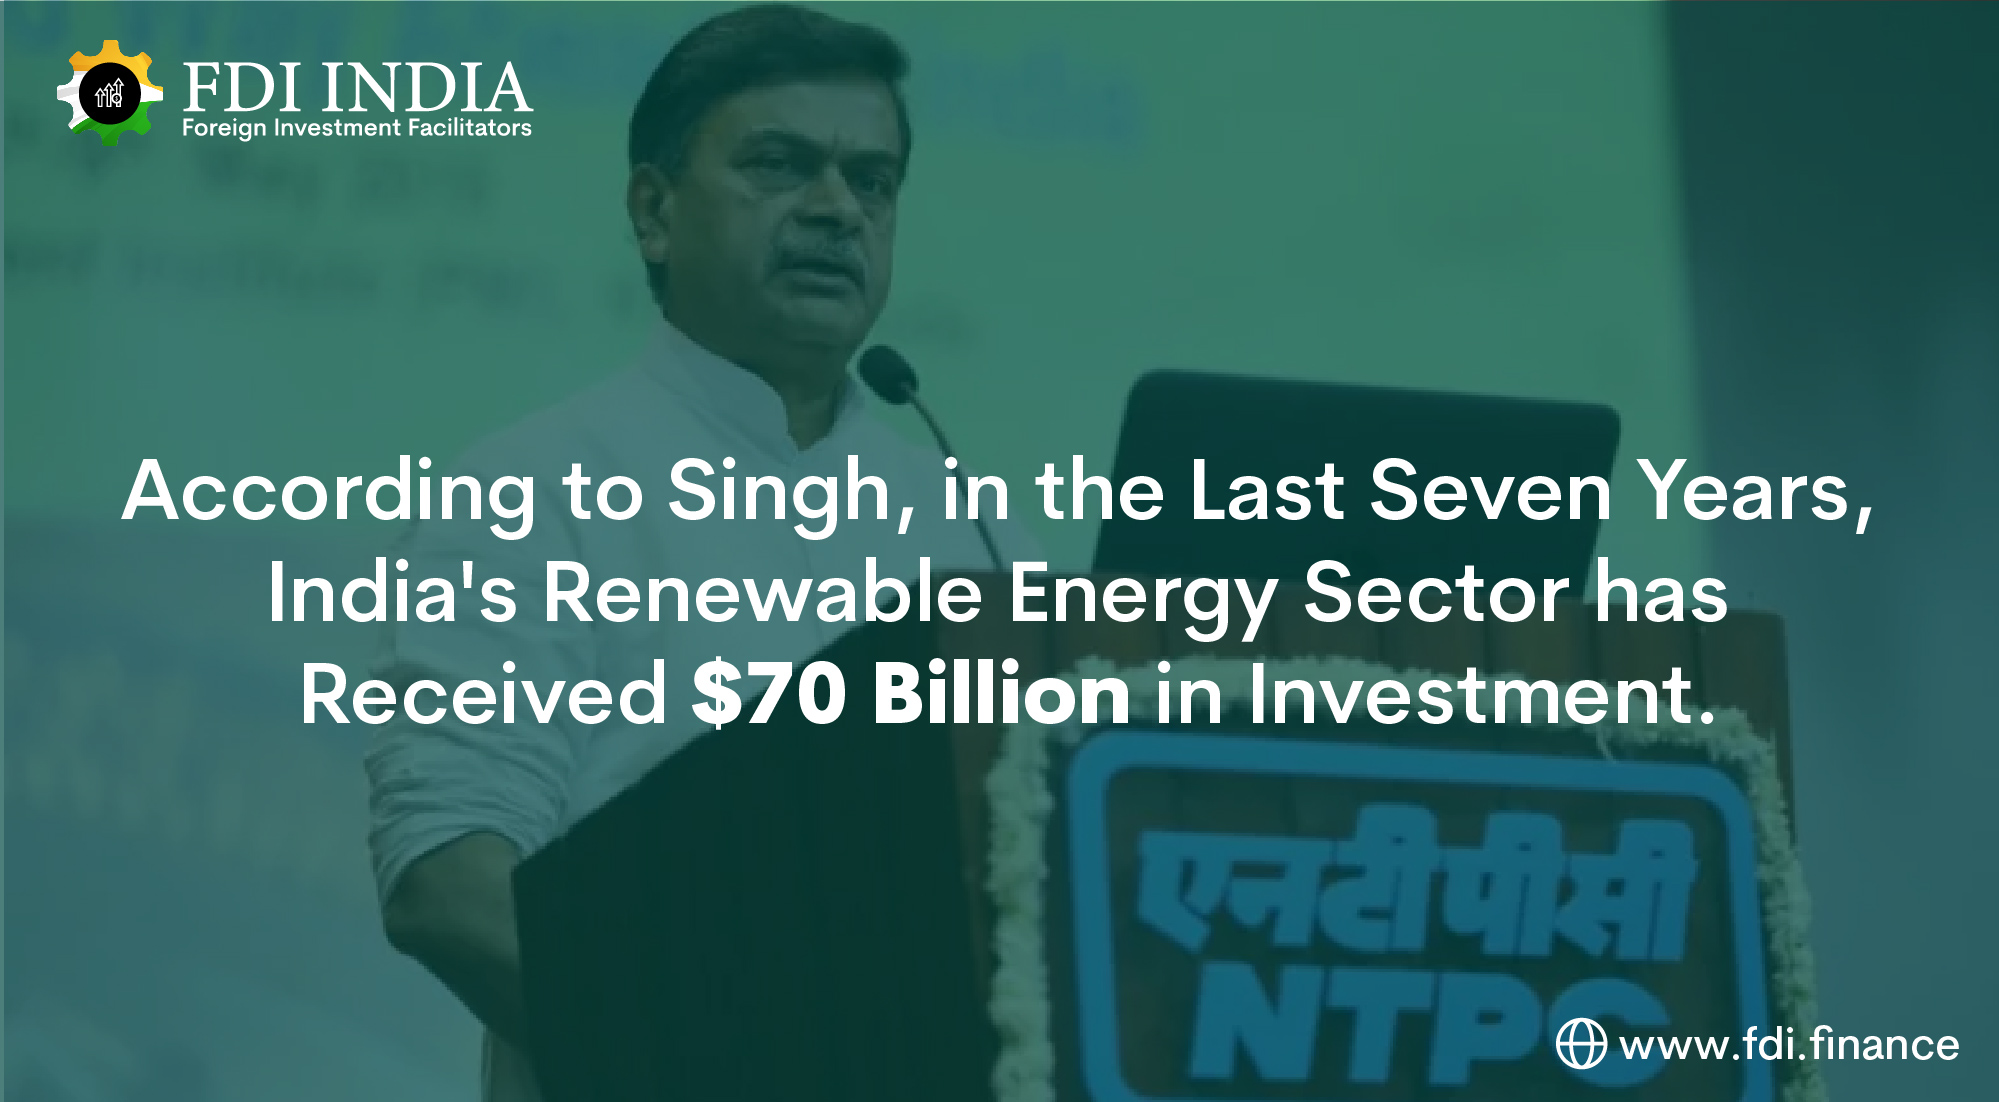 According to Singh, in the Last Seven Years, India's Renewable Energy Sector Has Received $70 Billion in Investment